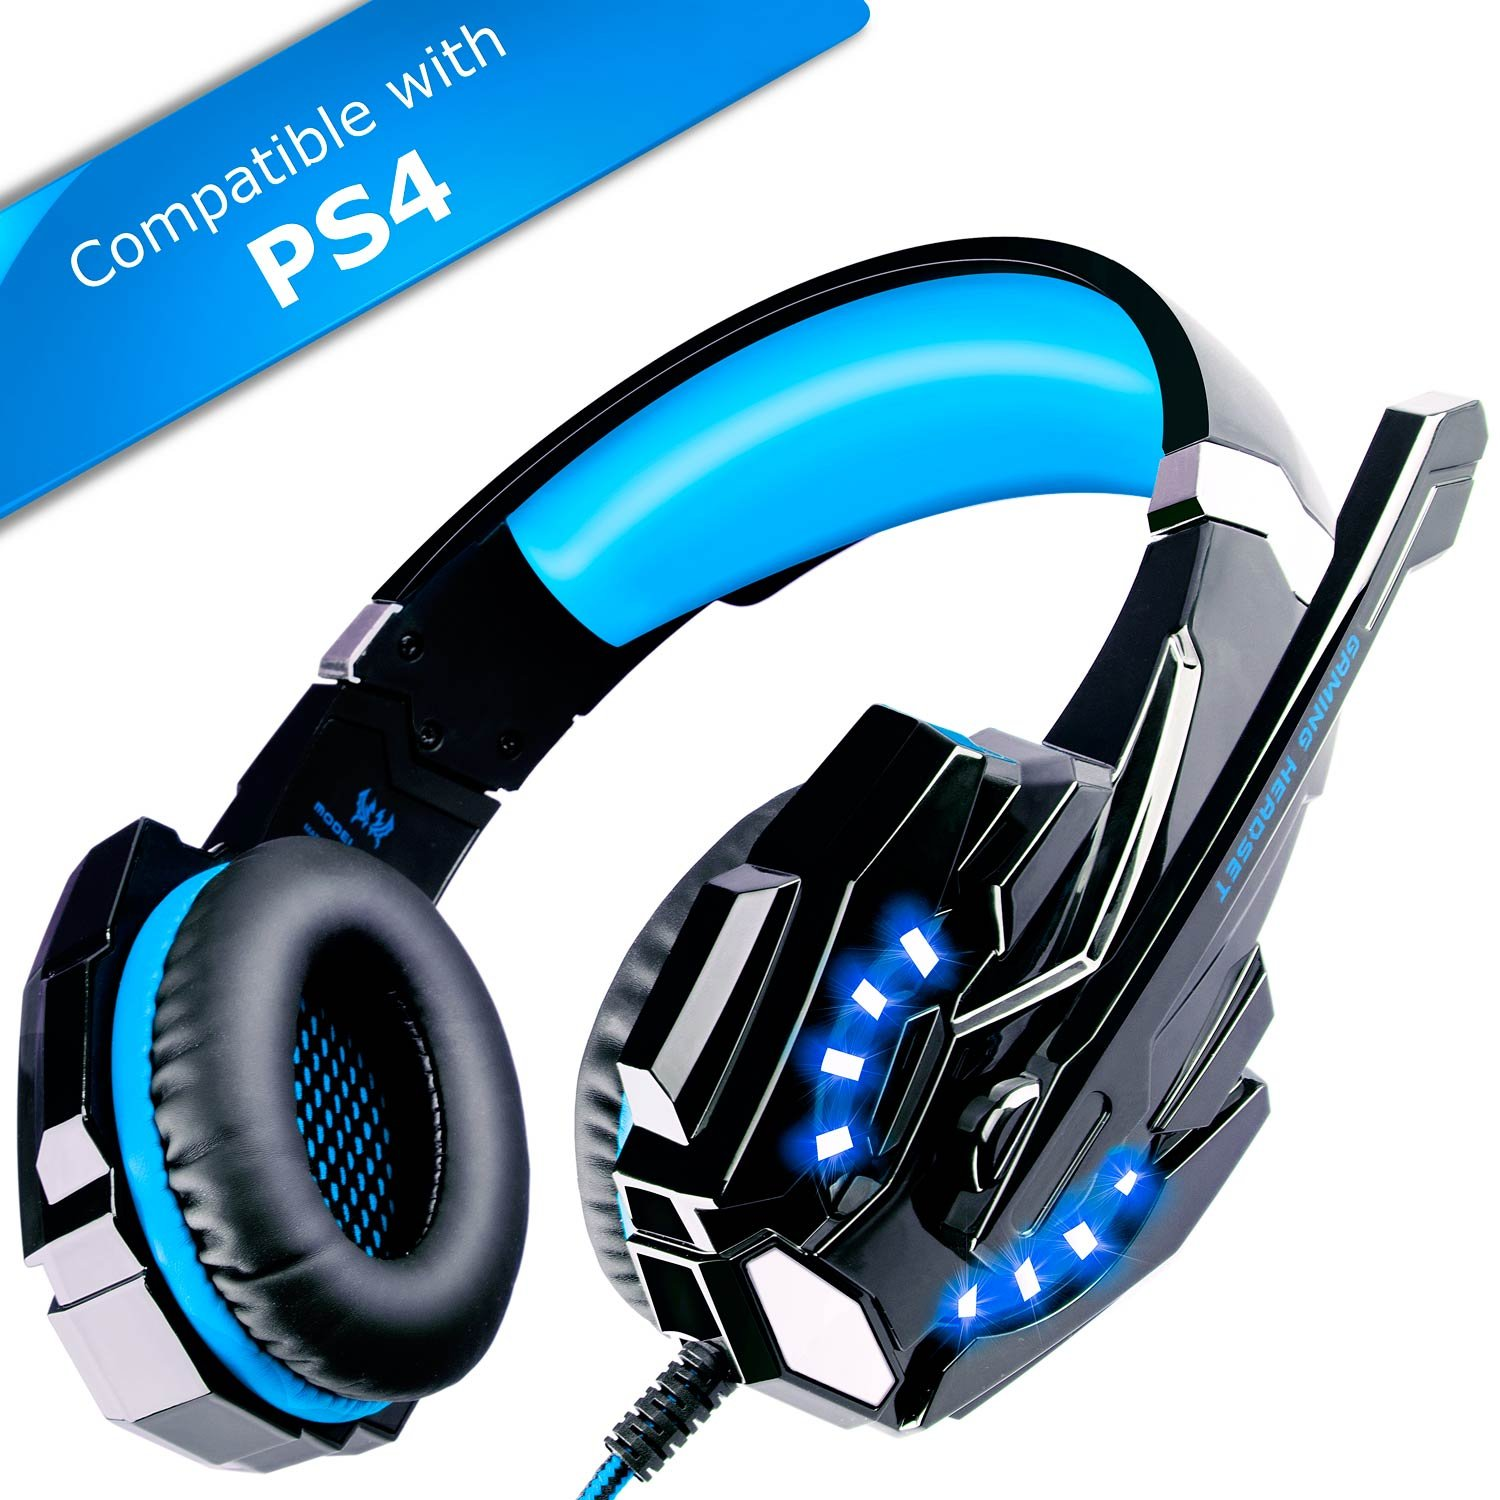 ecoopro gaming headset ps4 headset gaming headphones with microphone led ligh ebay. Black Bedroom Furniture Sets. Home Design Ideas